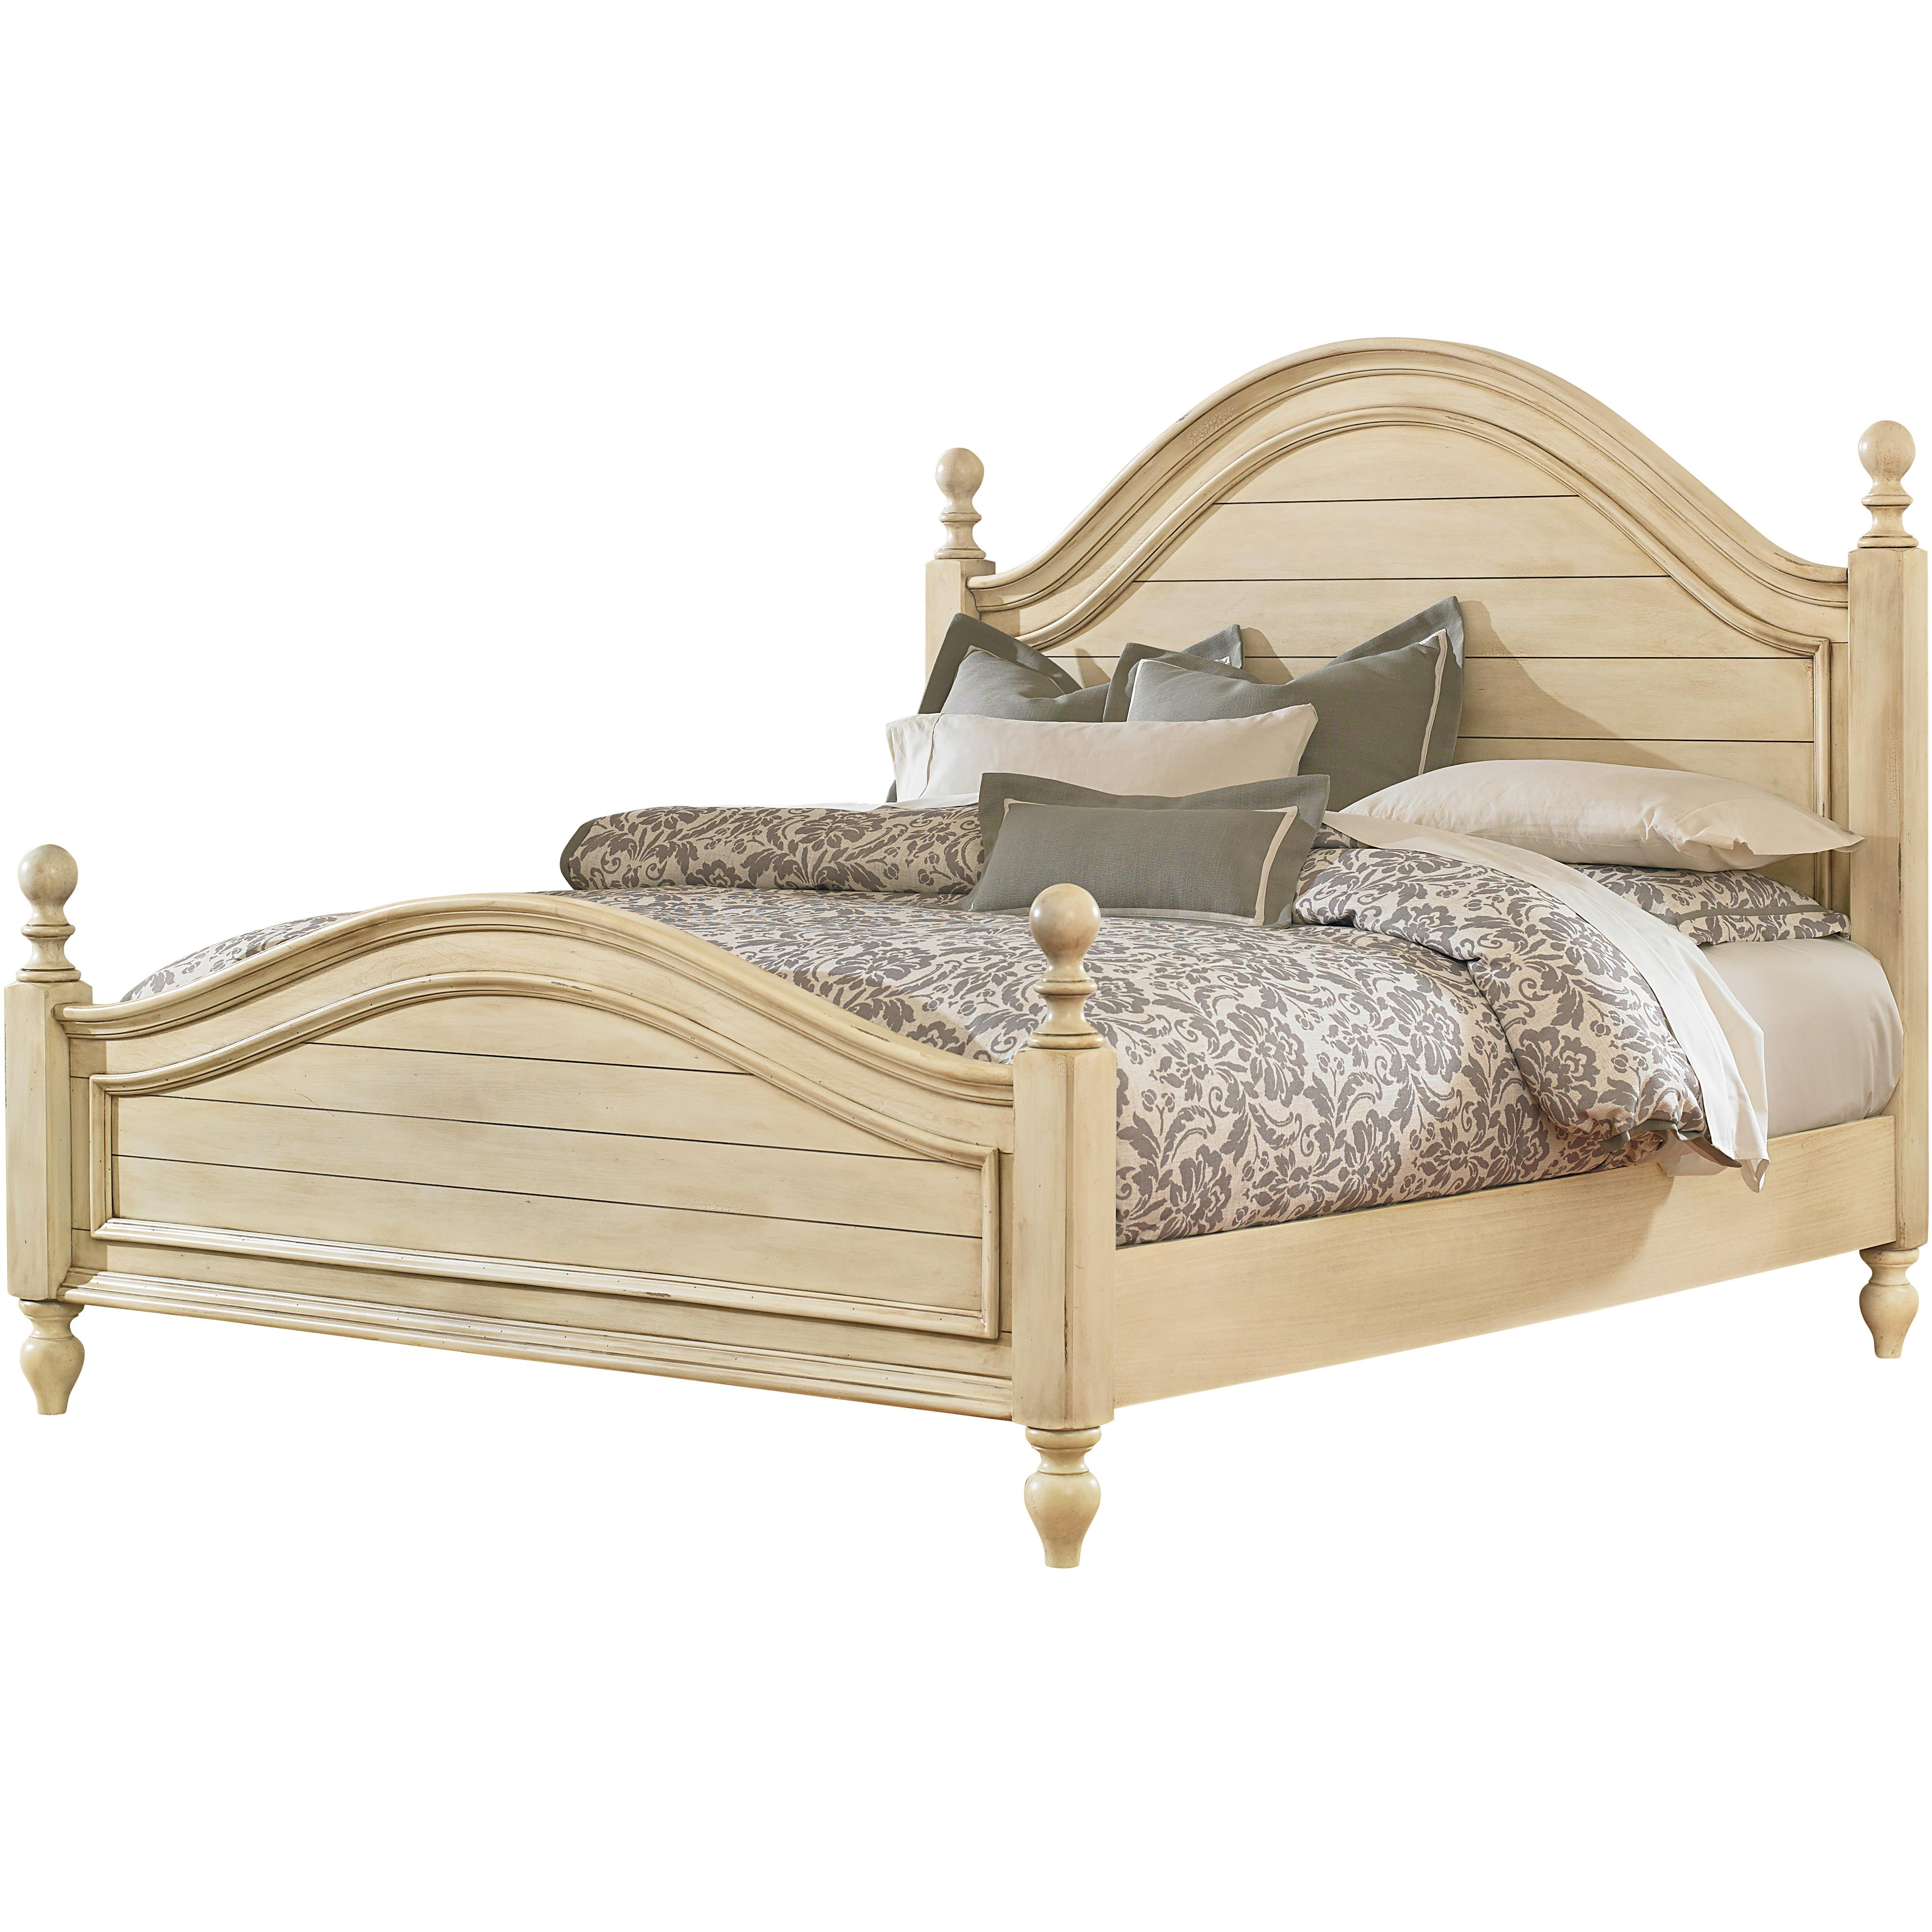 Standard Furniture Chateau Queen Bed - Item Number: 82853+82851+82852